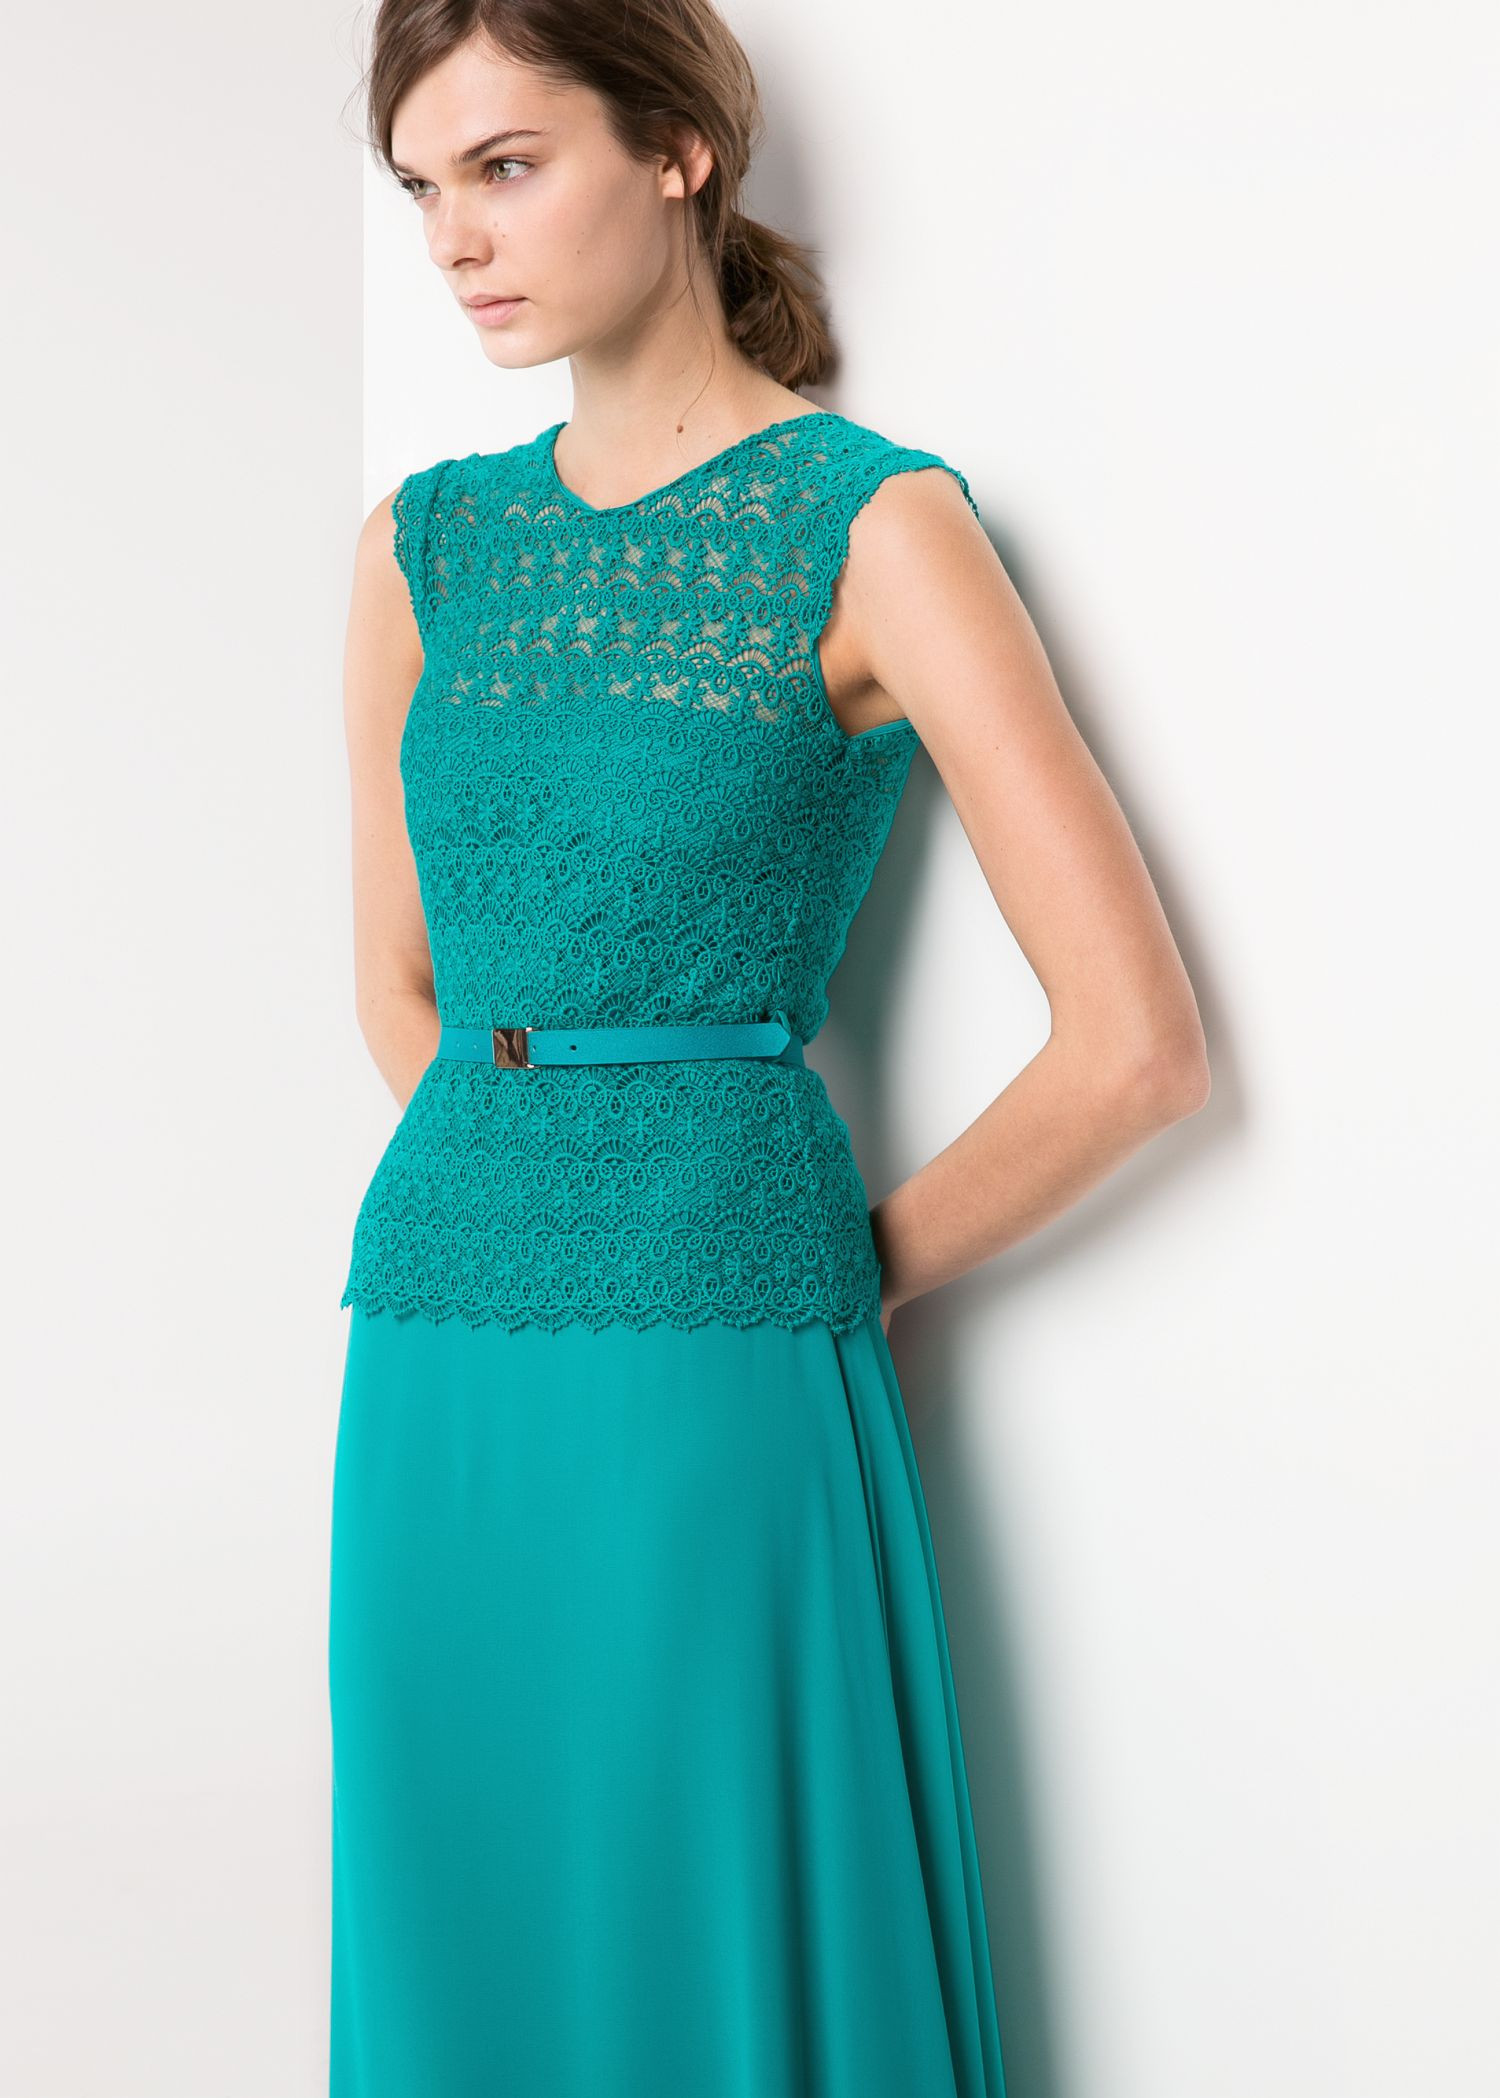 Crochet top Dress Fresh Mango Crochet top Long Dress In Green Turquoise Of Incredible 41 Models Crochet top Dress